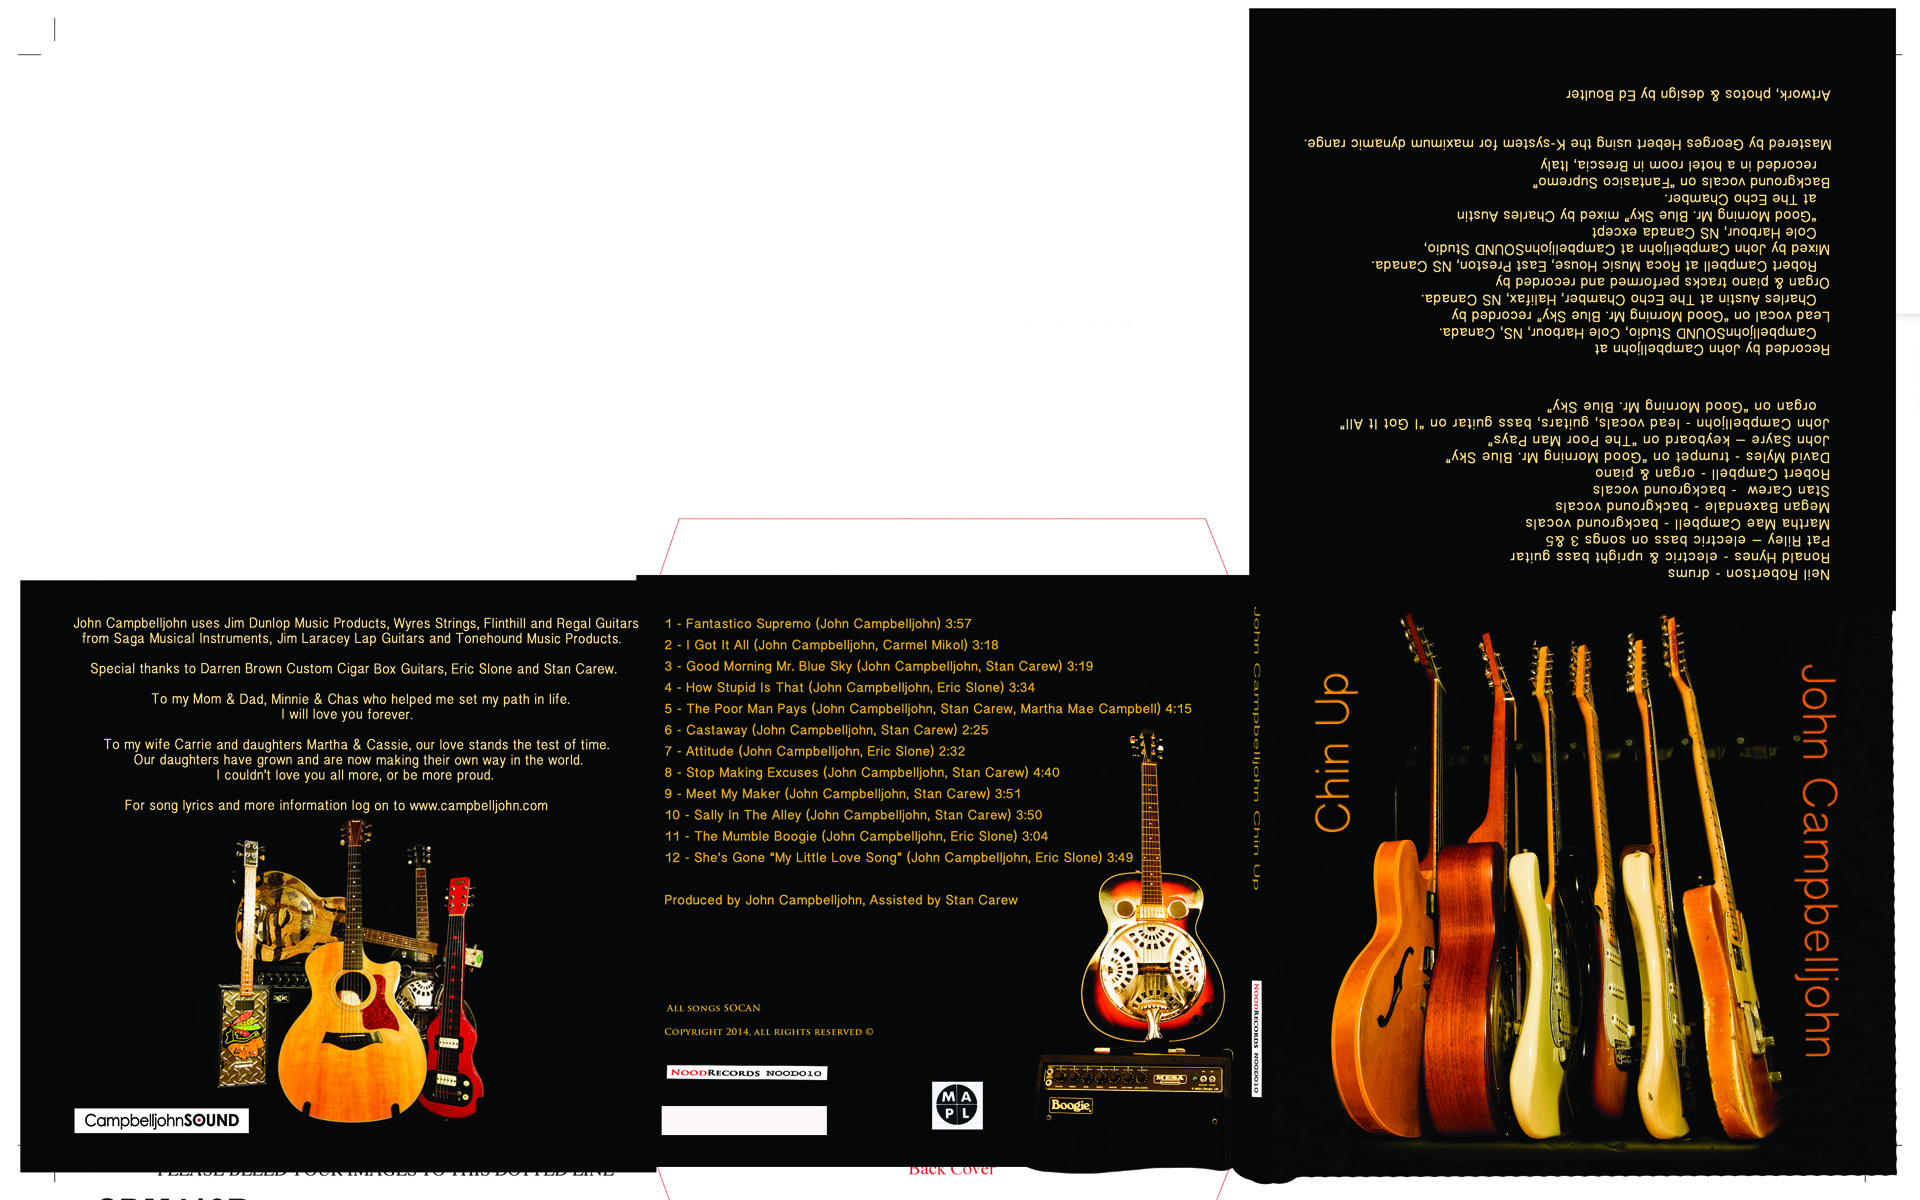 All photography, art work and design for the 2015 ECMA Blues CD of the year by John Campbelljohn.